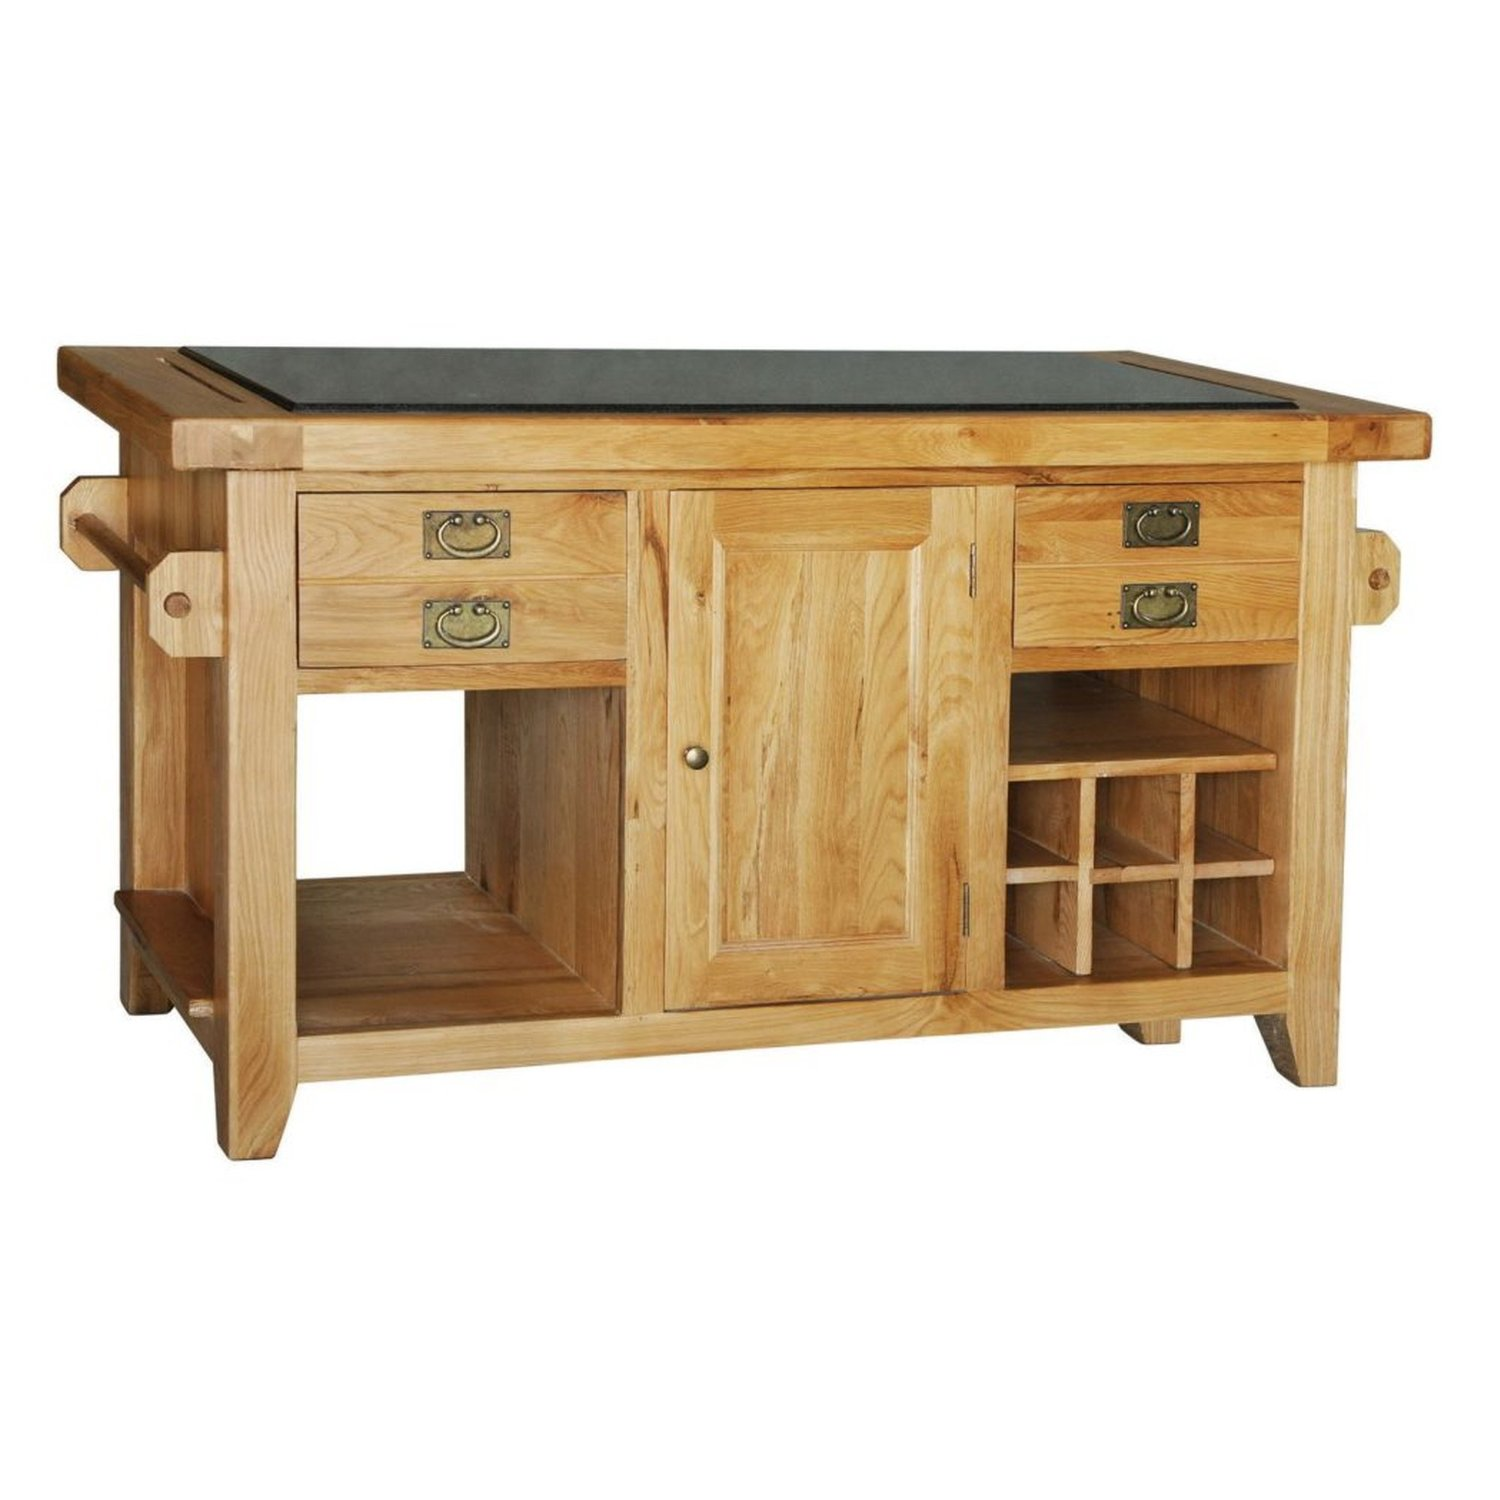 Wood Kitchen Island Plans Wood Free Standing Kitchen Island Plans Pdf Plans